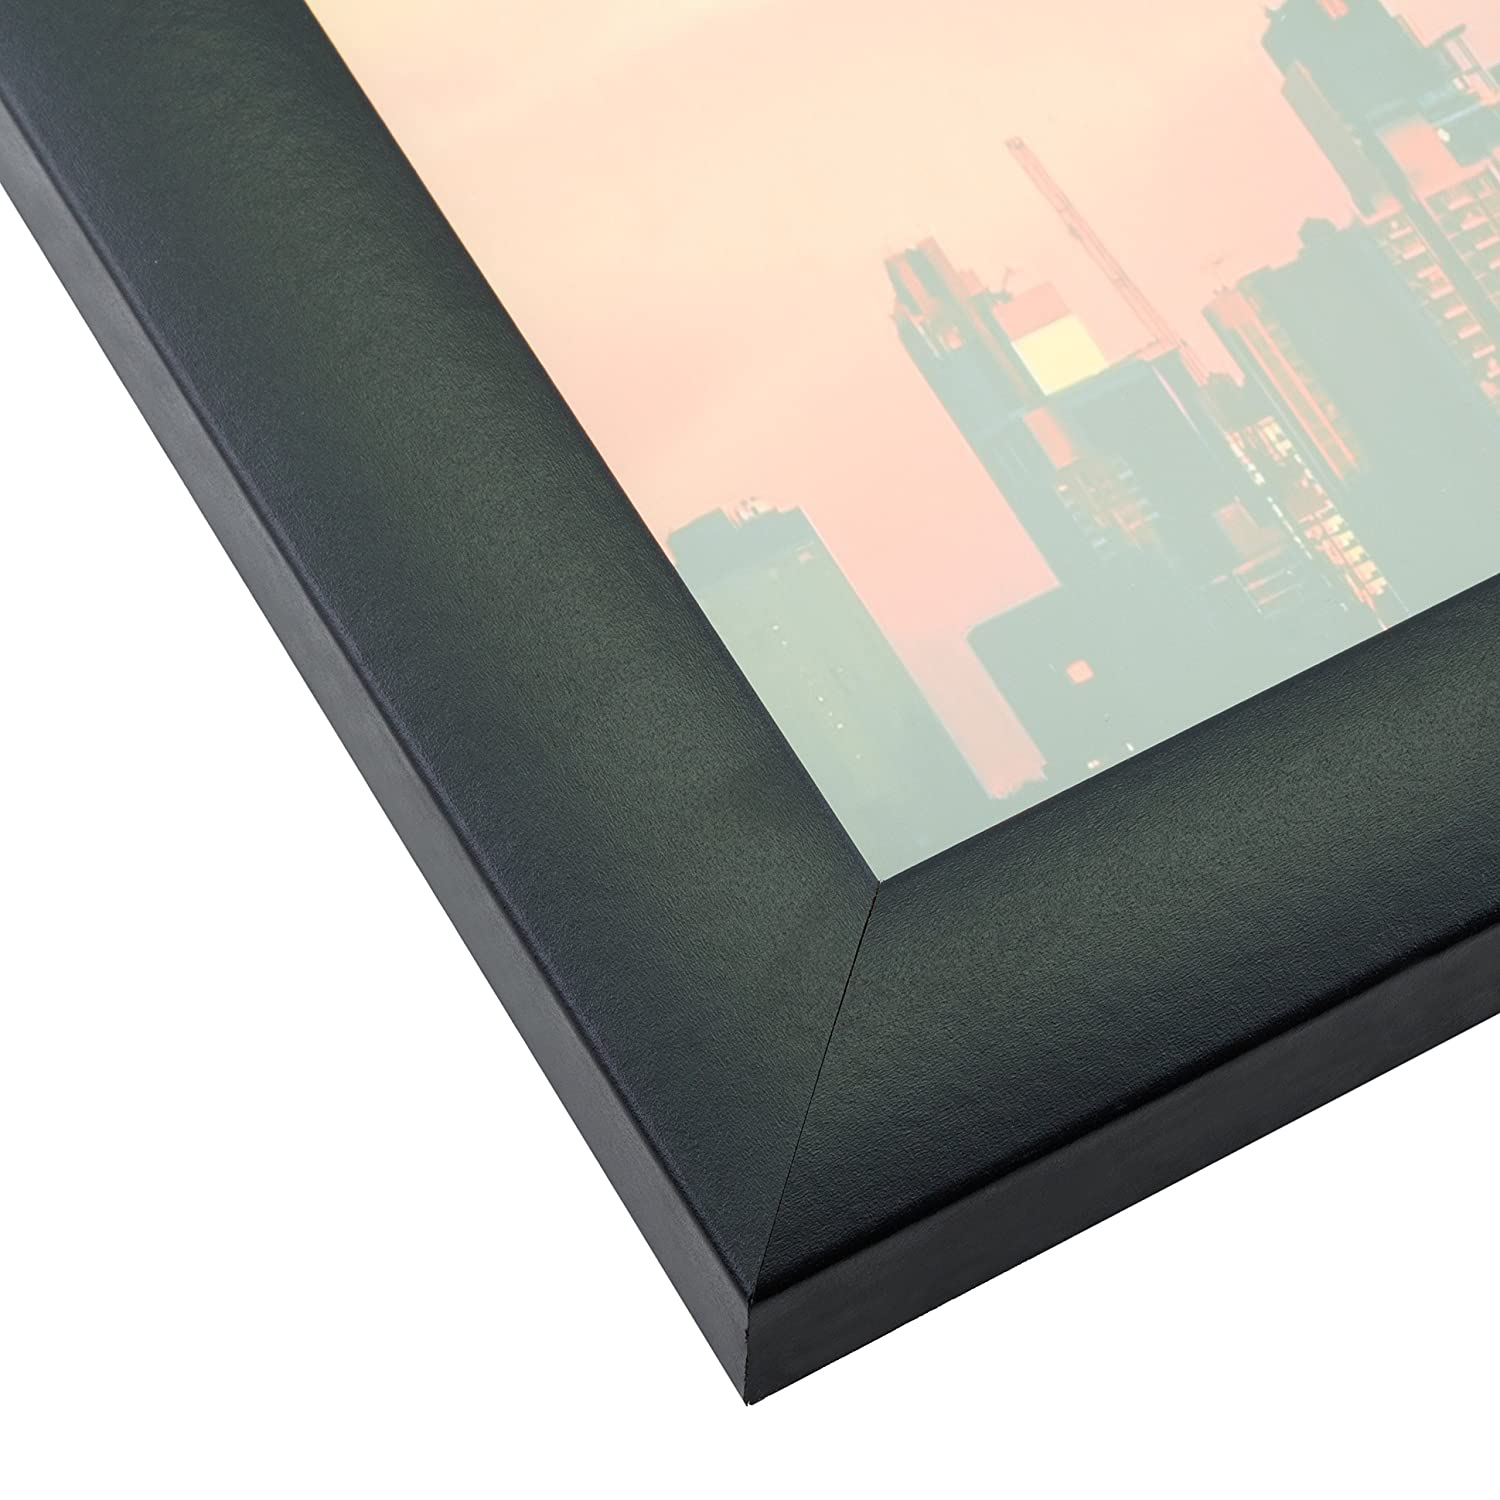 Smooth Wrap Finish Craig Frames 1WB3BK 11 by 17-Inch Picture Frame Black 1-Inch Wide